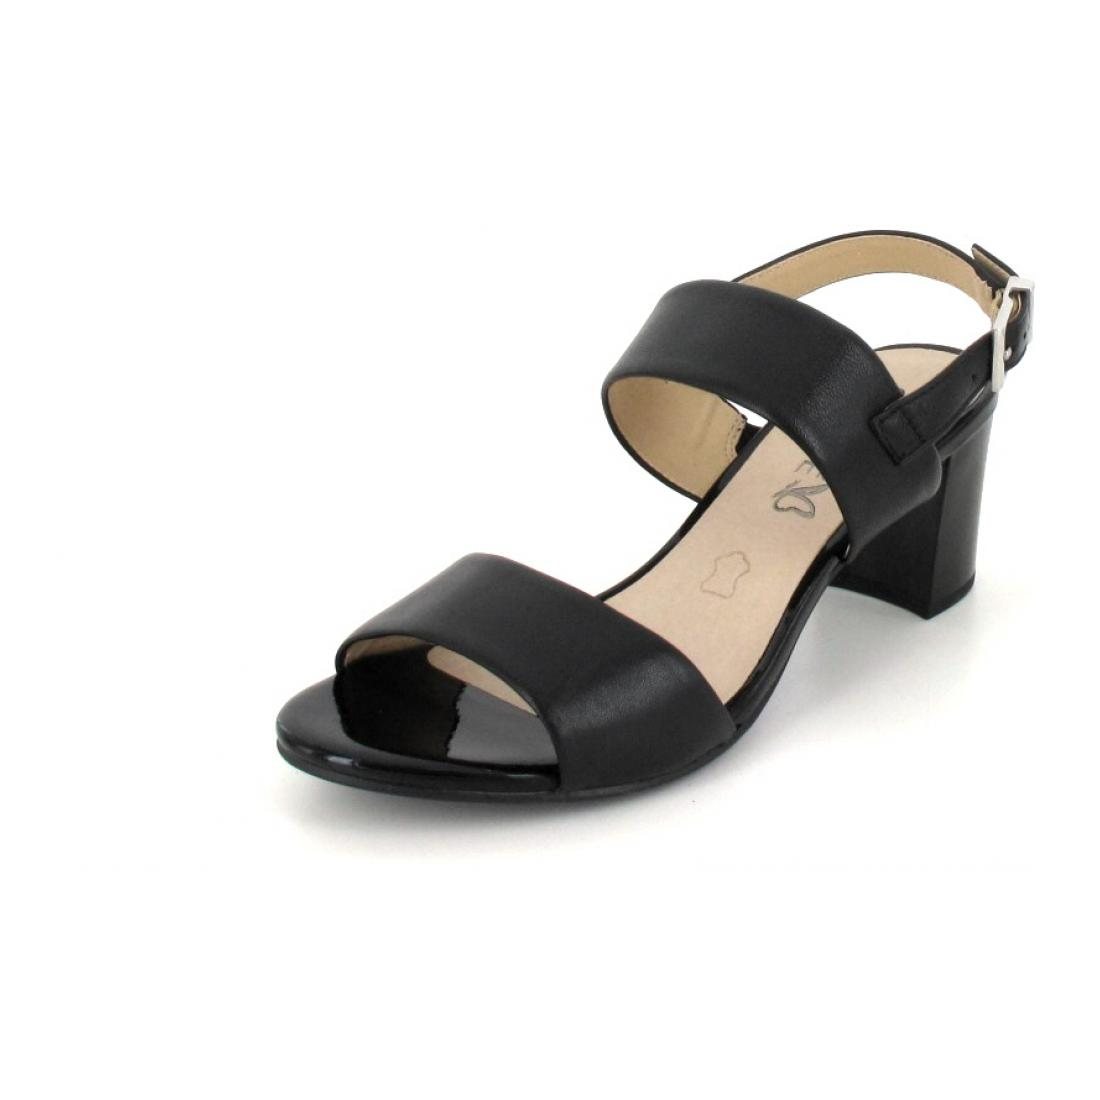 Caprice Pumps BLACK NAPPA